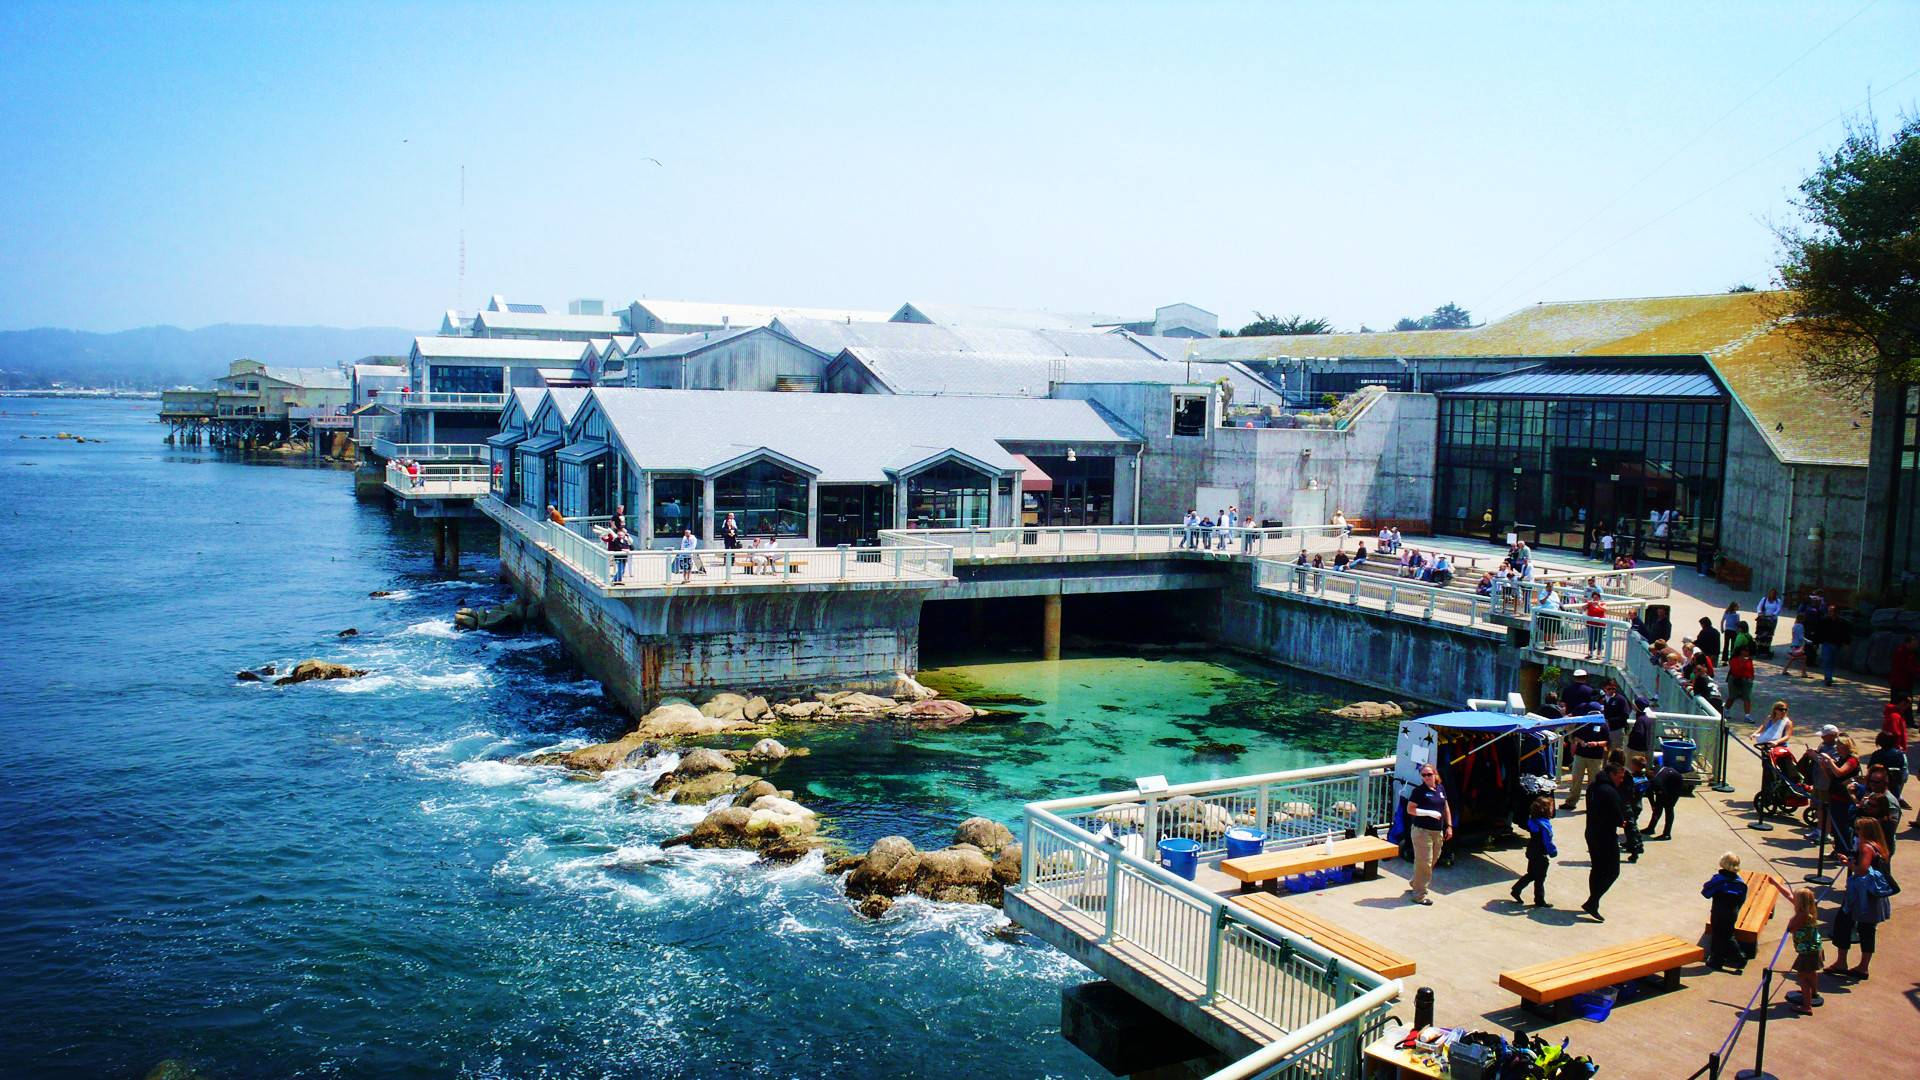 1-Day Monterey Bay, 17-Mile Drive, Carmel-by-the-Sea (with Monterey Bay Aquarium) Tour